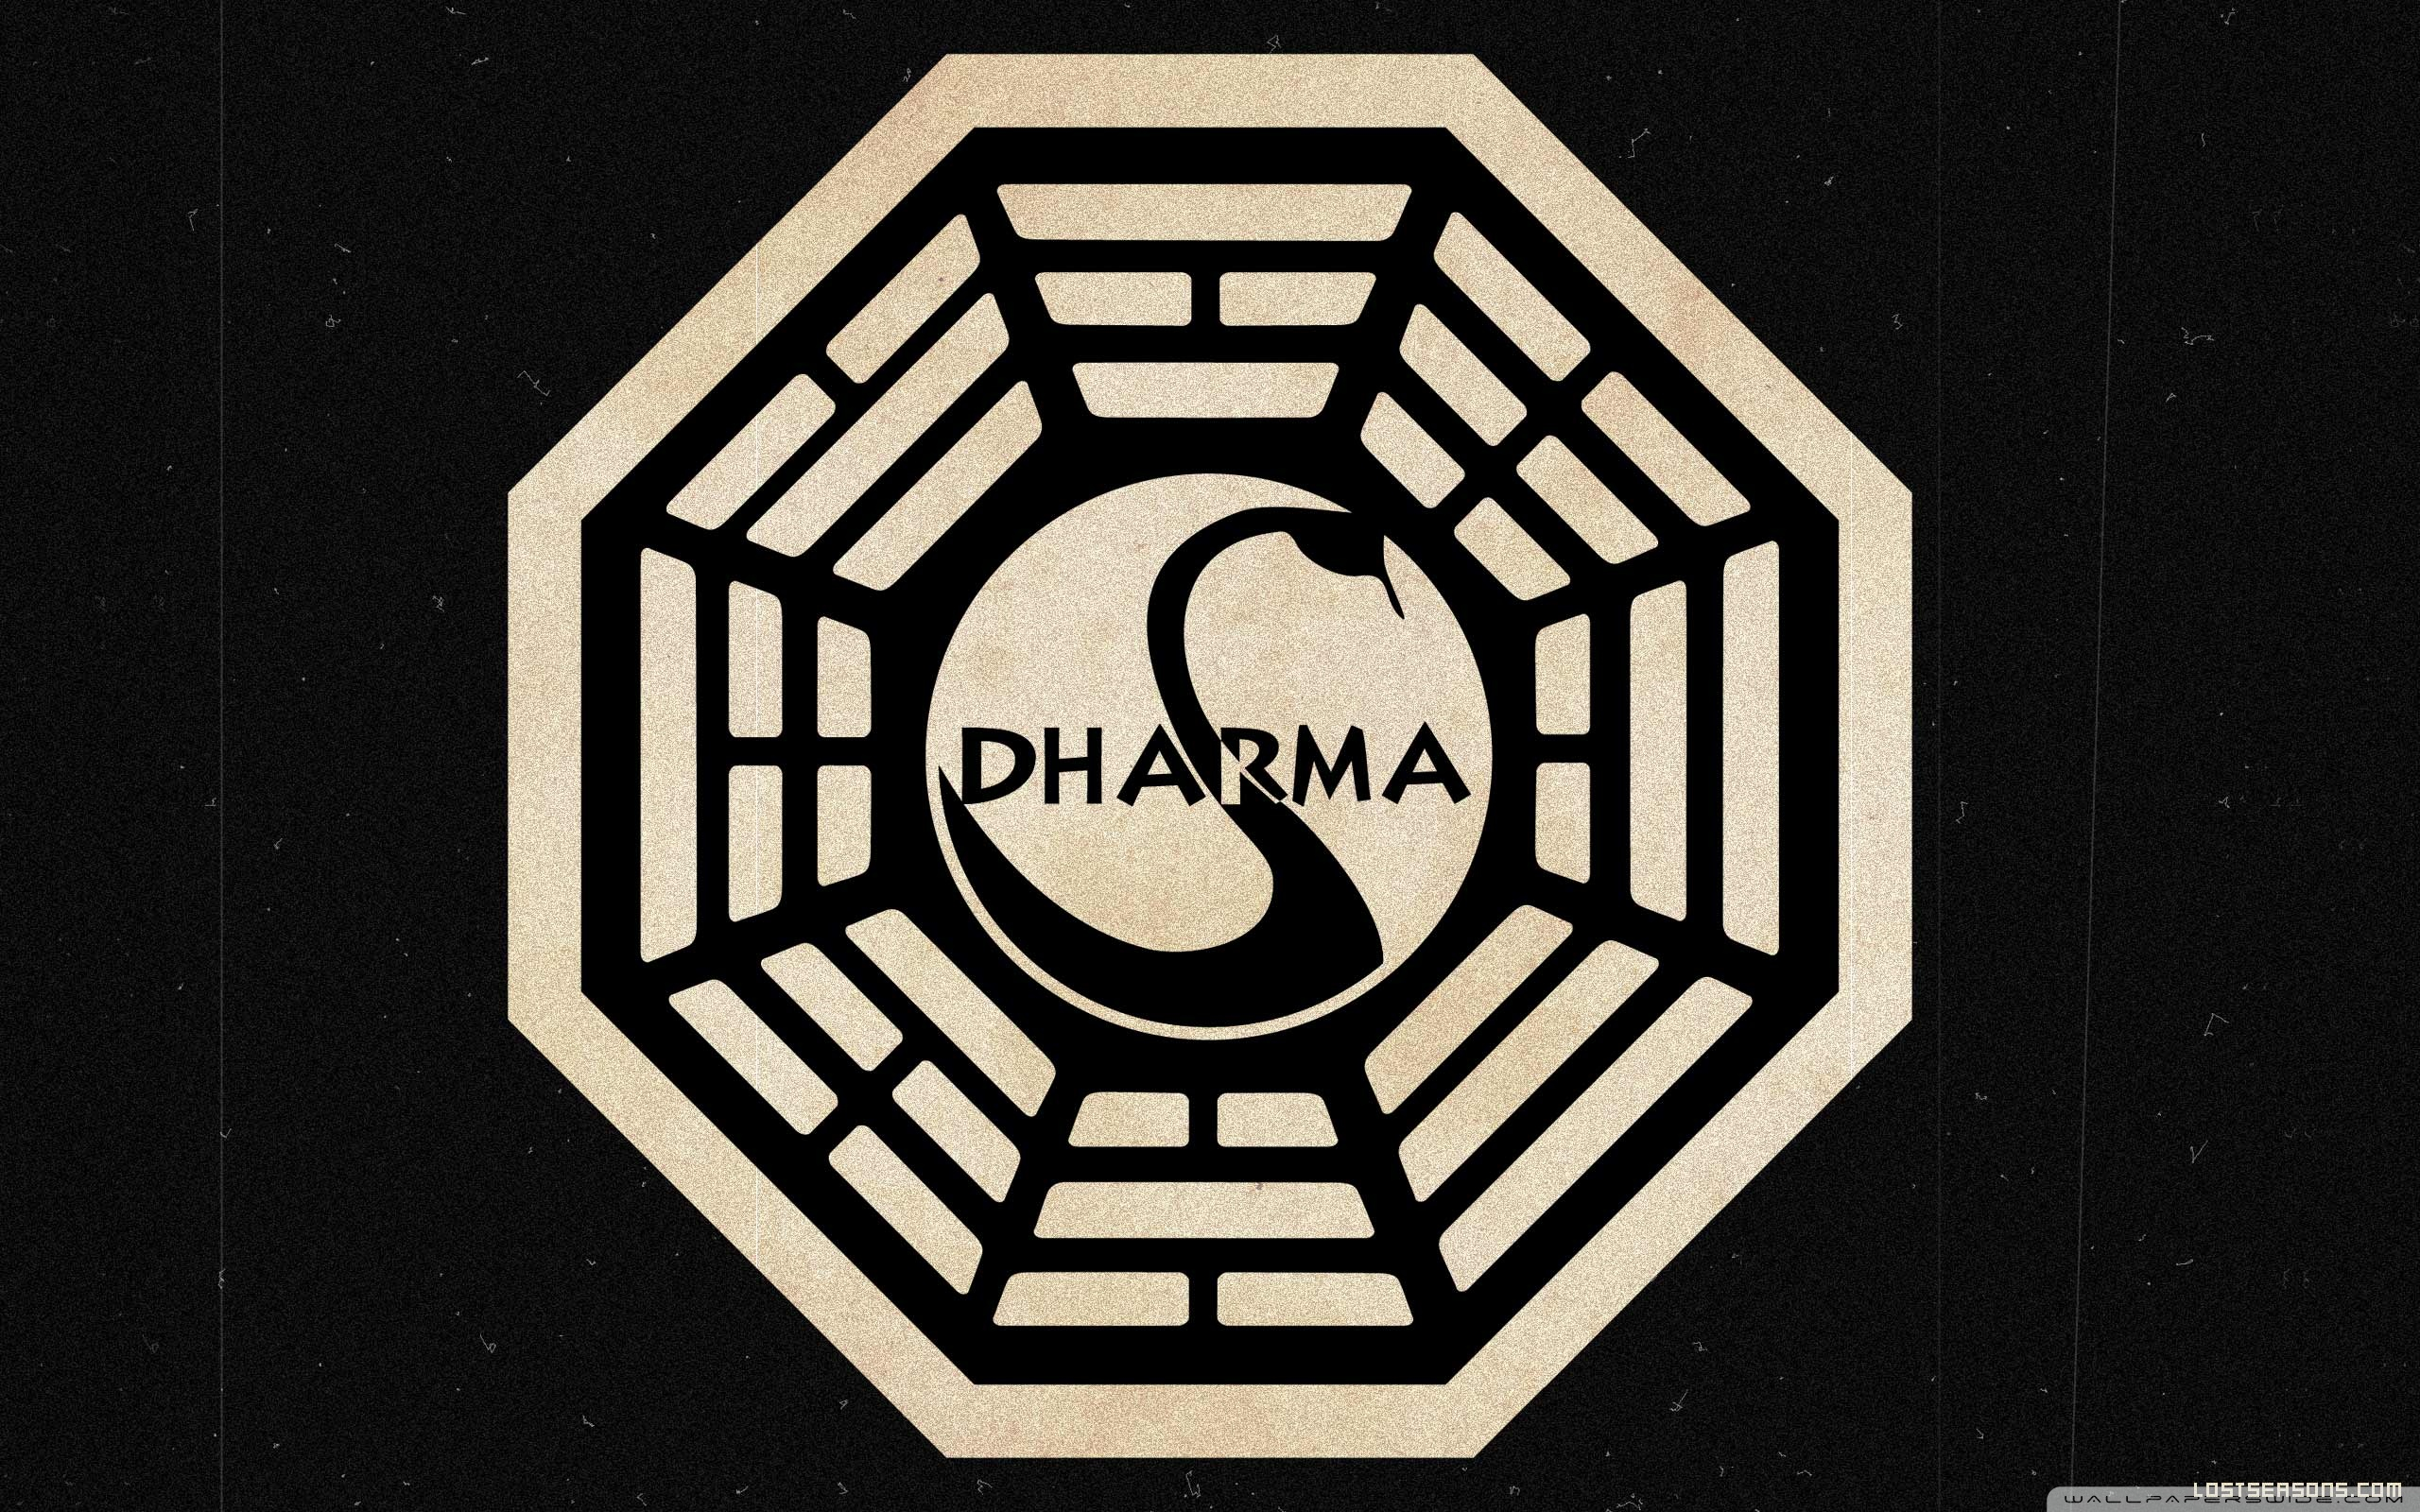 Lost TV Show Dharma 4K HD Desktop Wallpaper for Wide Ultra 2560x1600